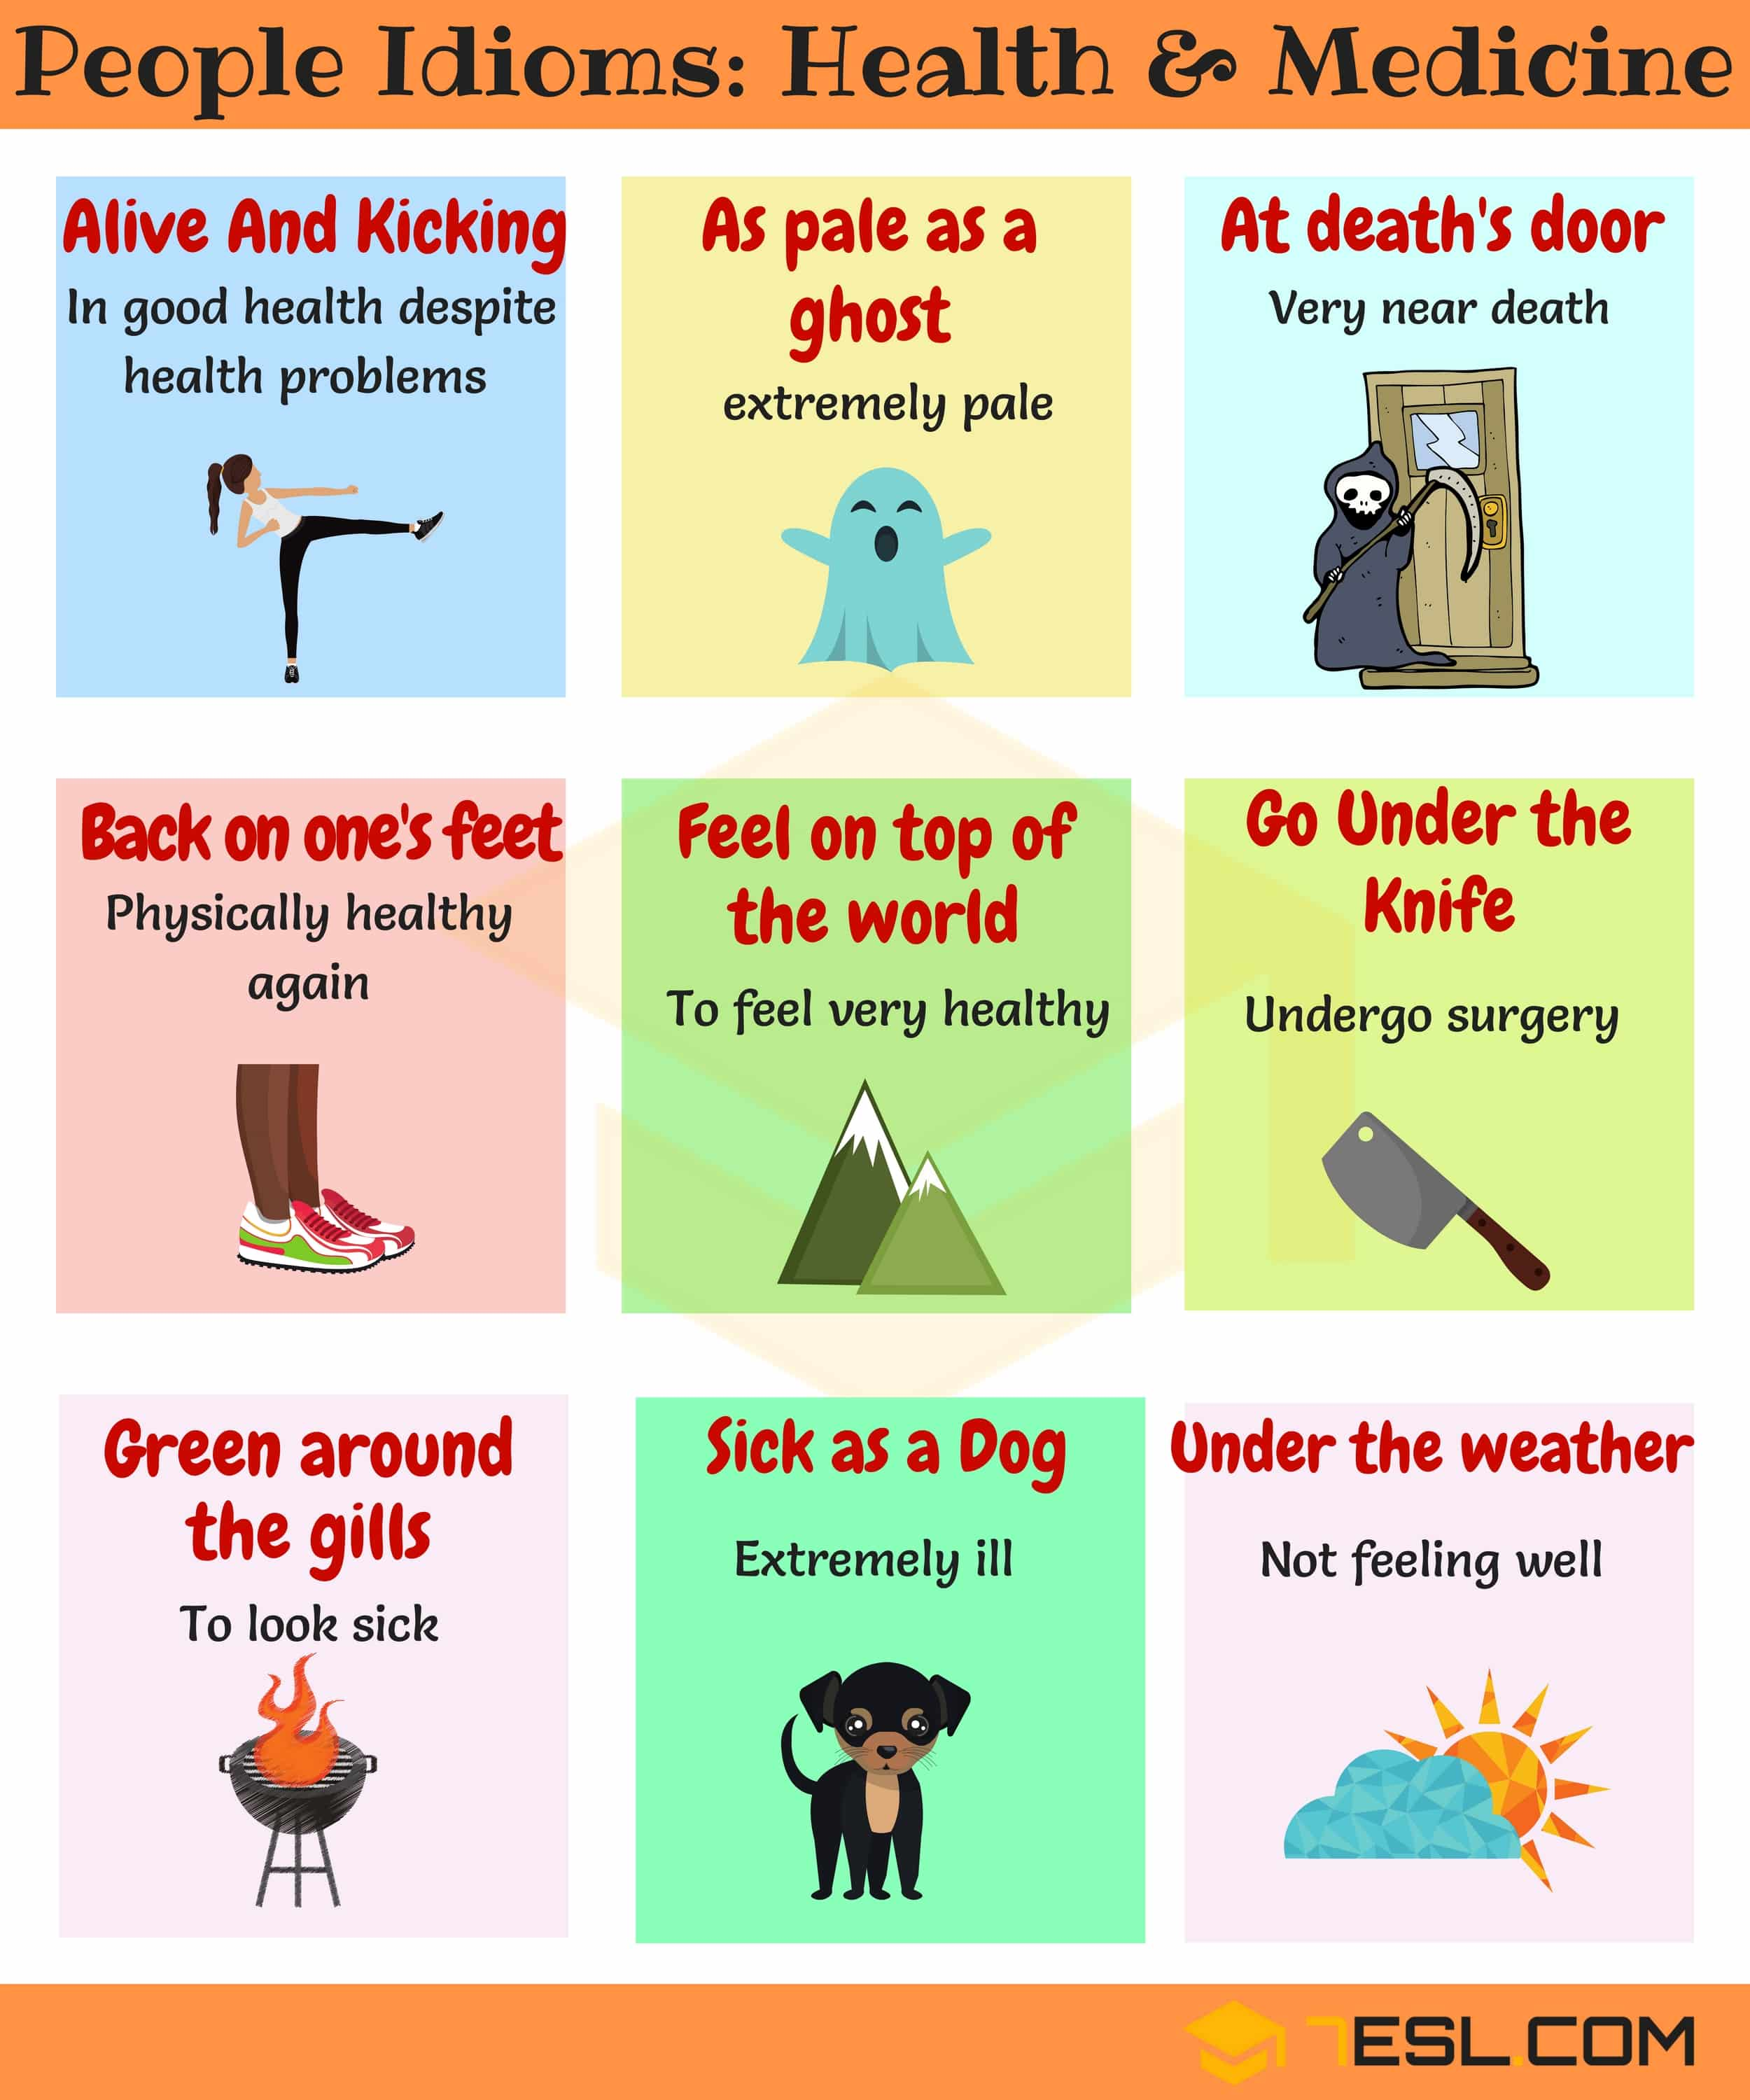 Health Idioms 30 Useful Health And Medicine Idioms 7 E S L